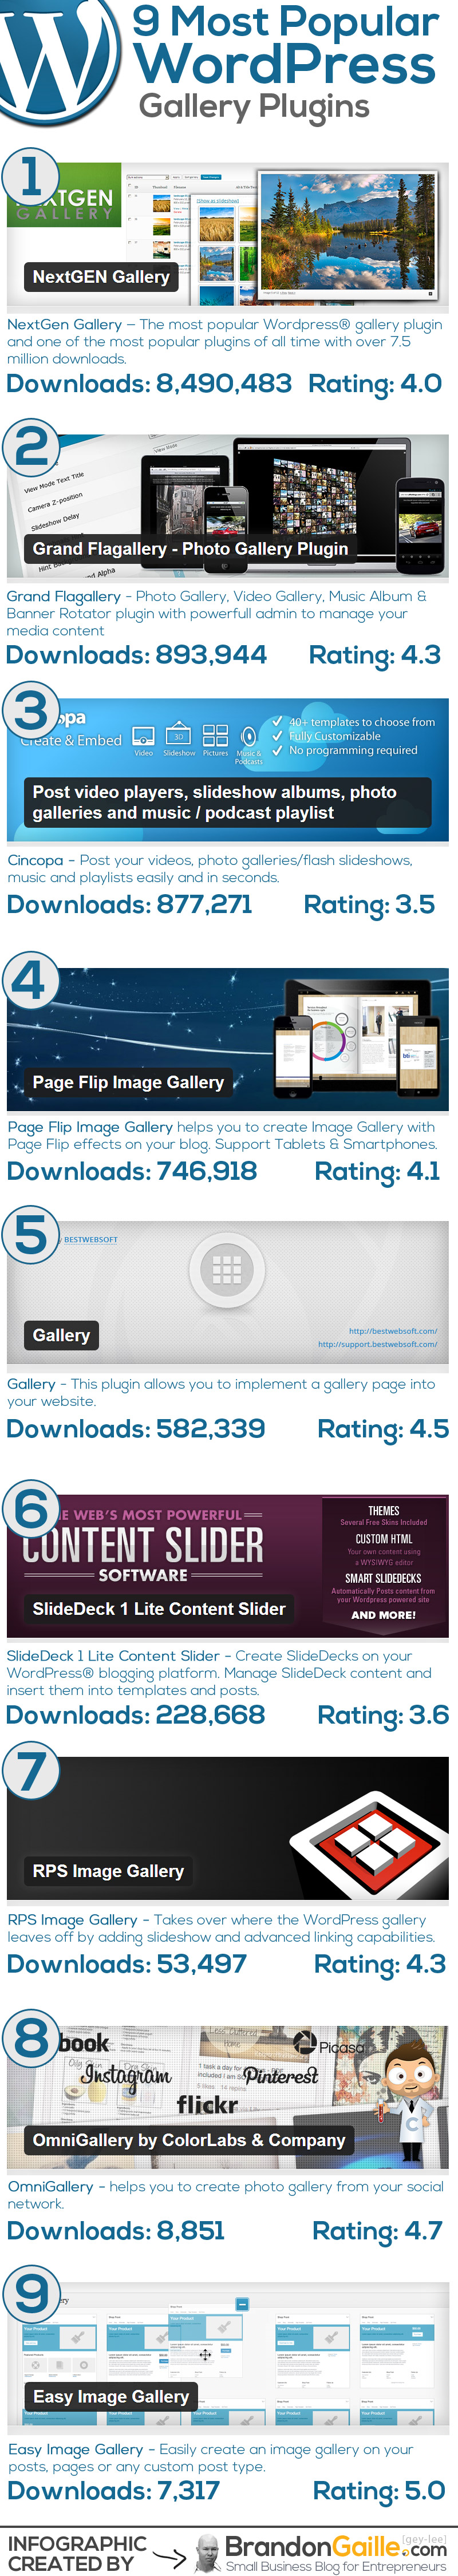 Best-Wordpress-Photo-Gallery-Plugins-Infographic